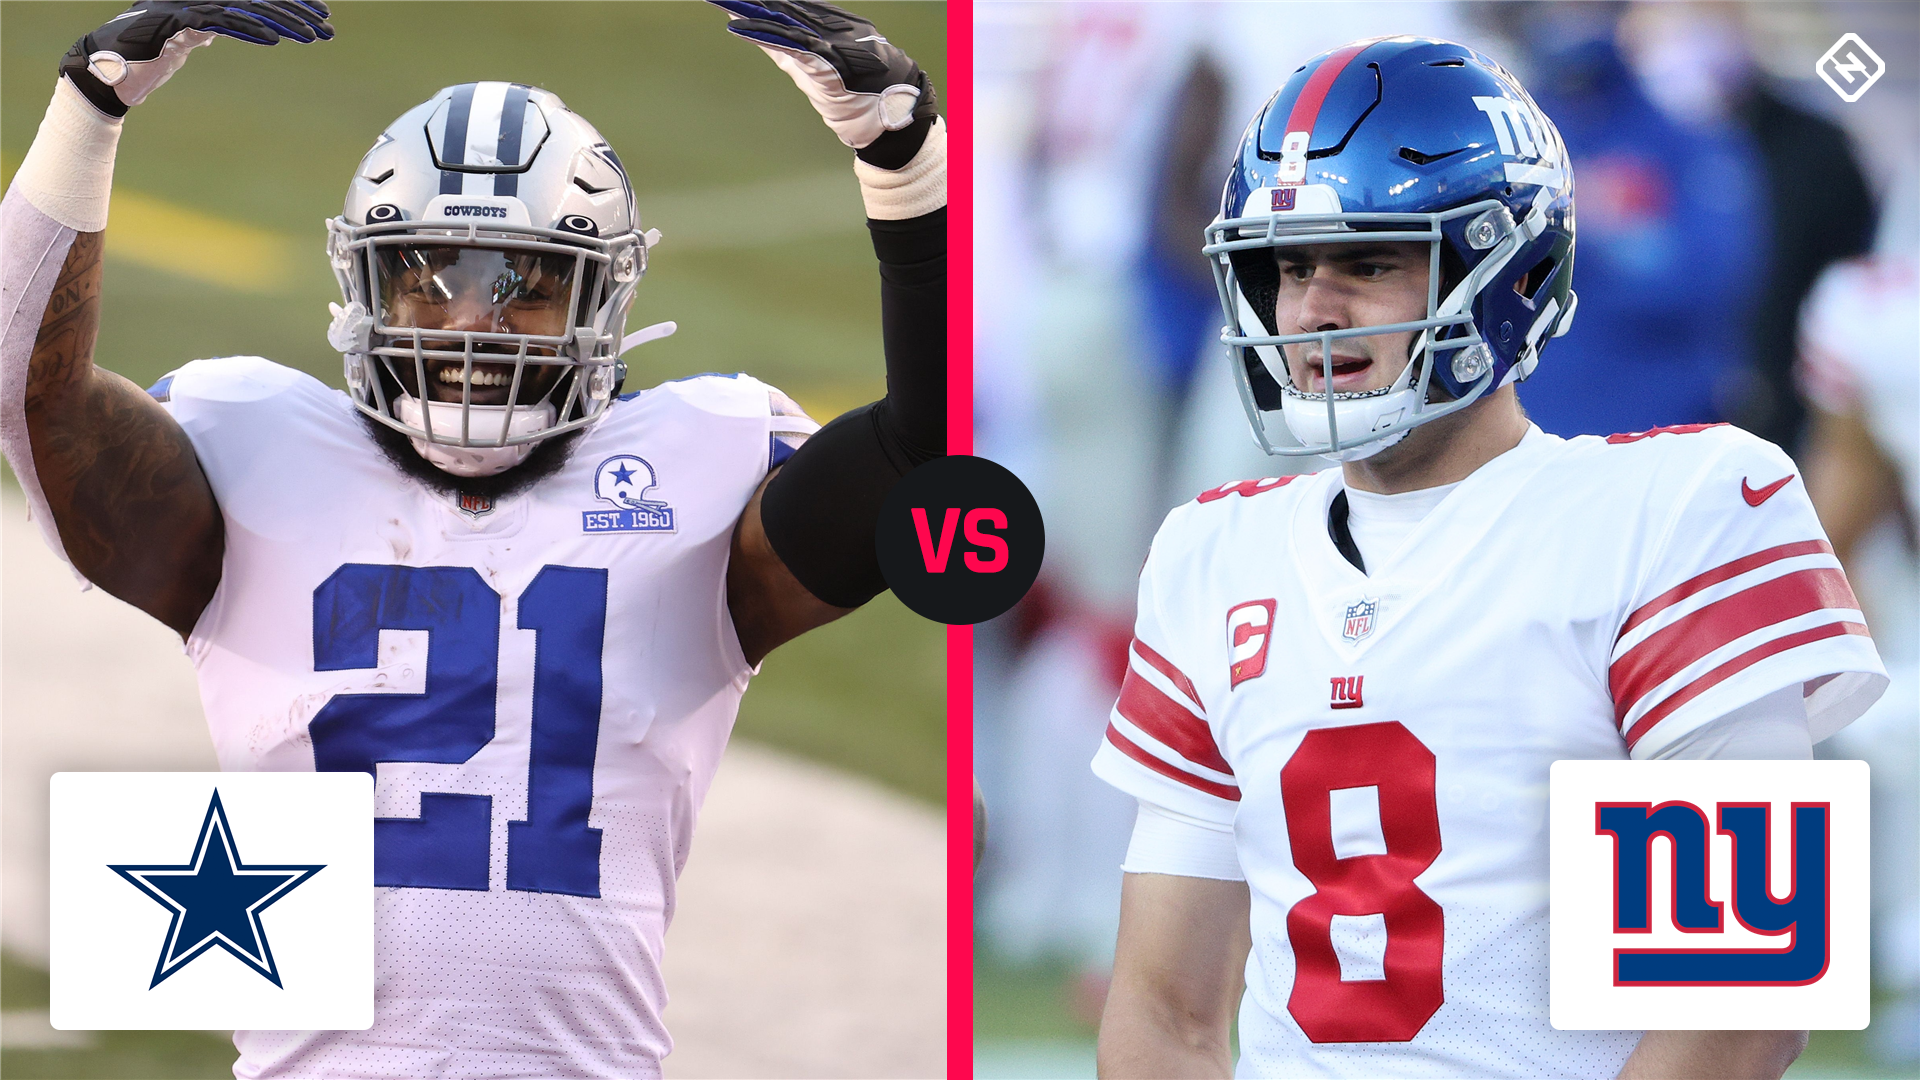 Cowboys vs. Giants coverage map: Where can NFL fans watch the Week 17 game on TV?